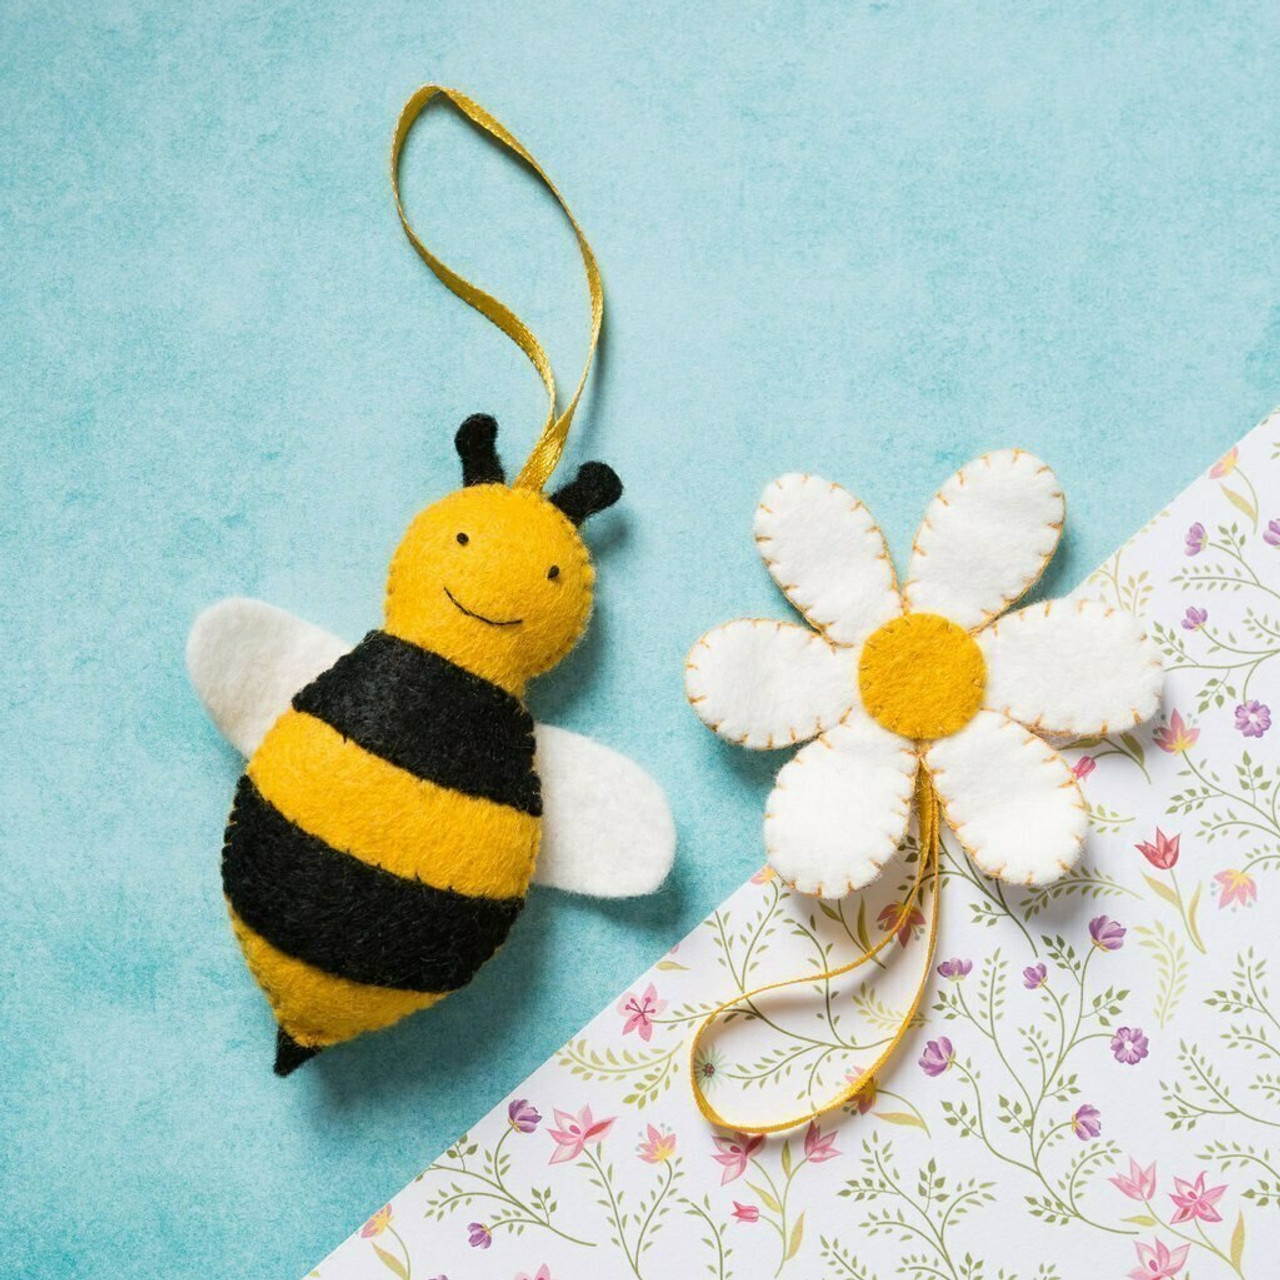 Bee and Flower Mini Kit